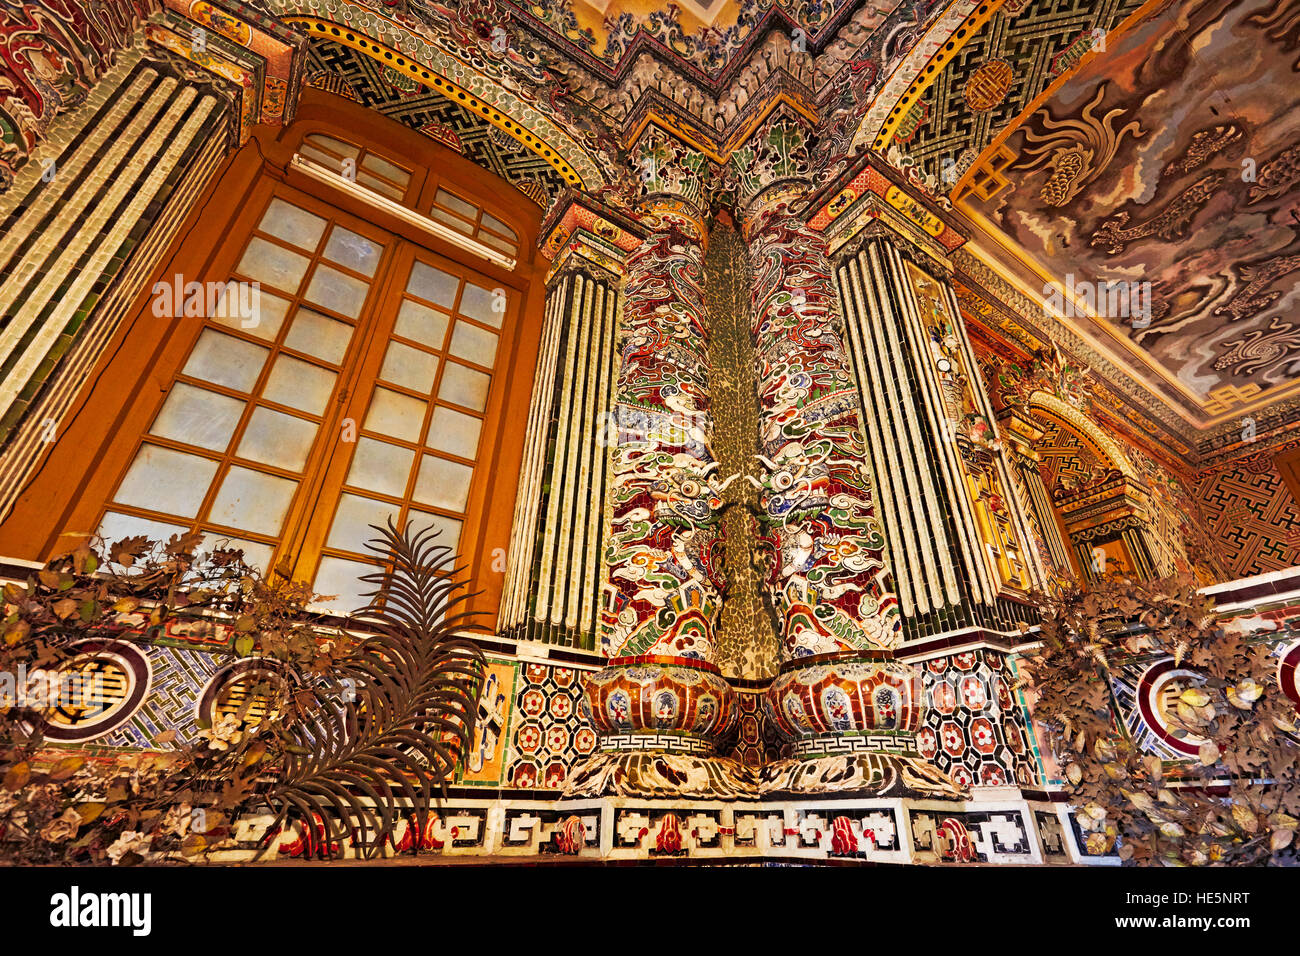 Interior detail of the Thien Dinh Palace. Tomb of Khai Dinh (Ung Tomb), Hue, Vietnam. - Stock Image